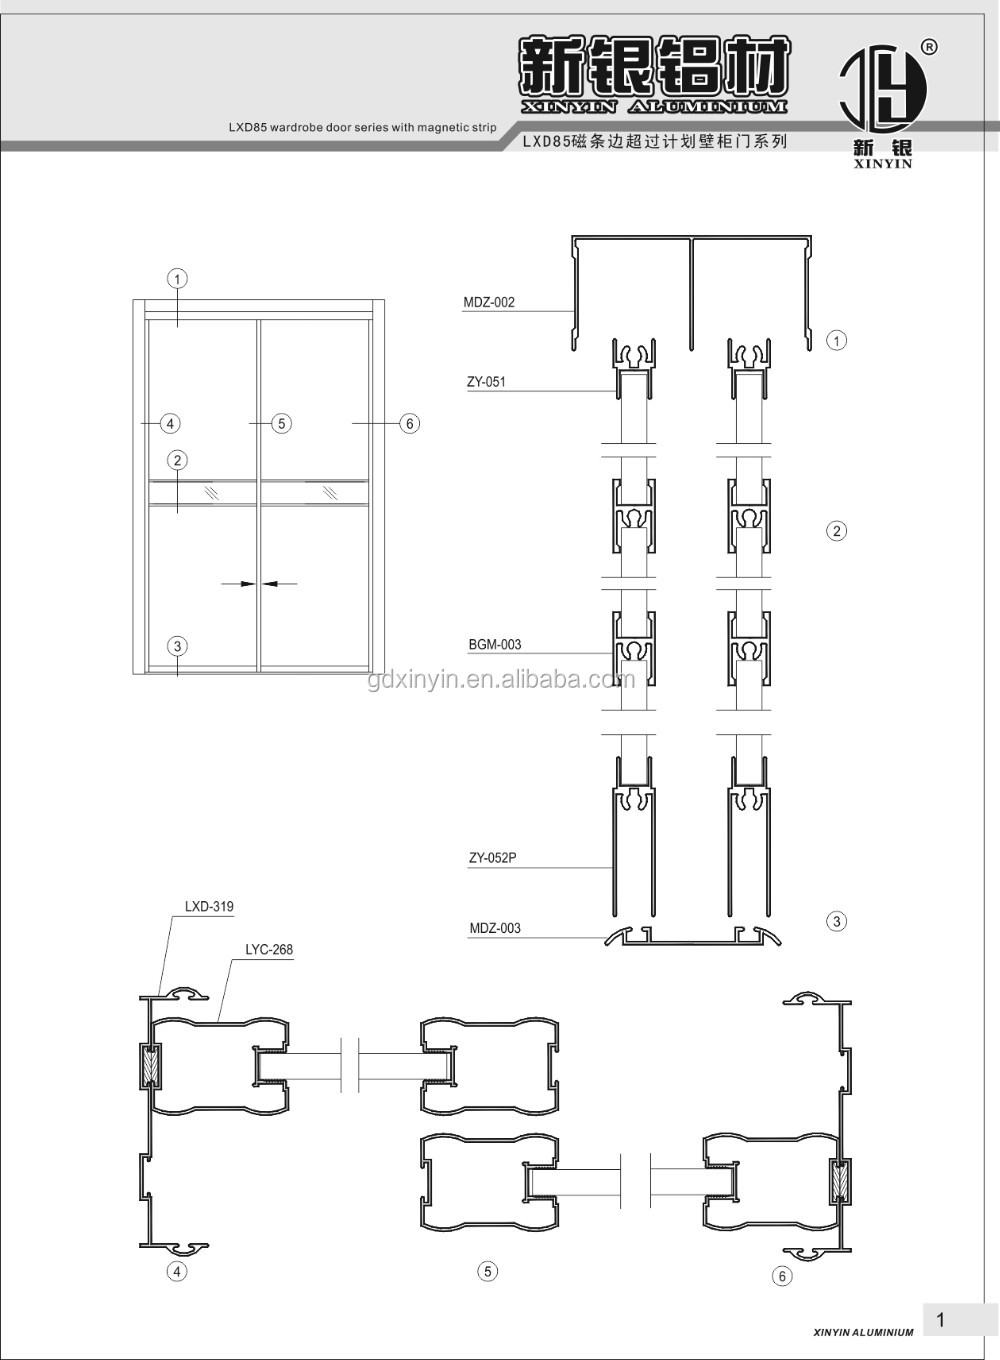 Aluminum Section Drawing Profile Of Aluminum Wardrobe Door Frame ...